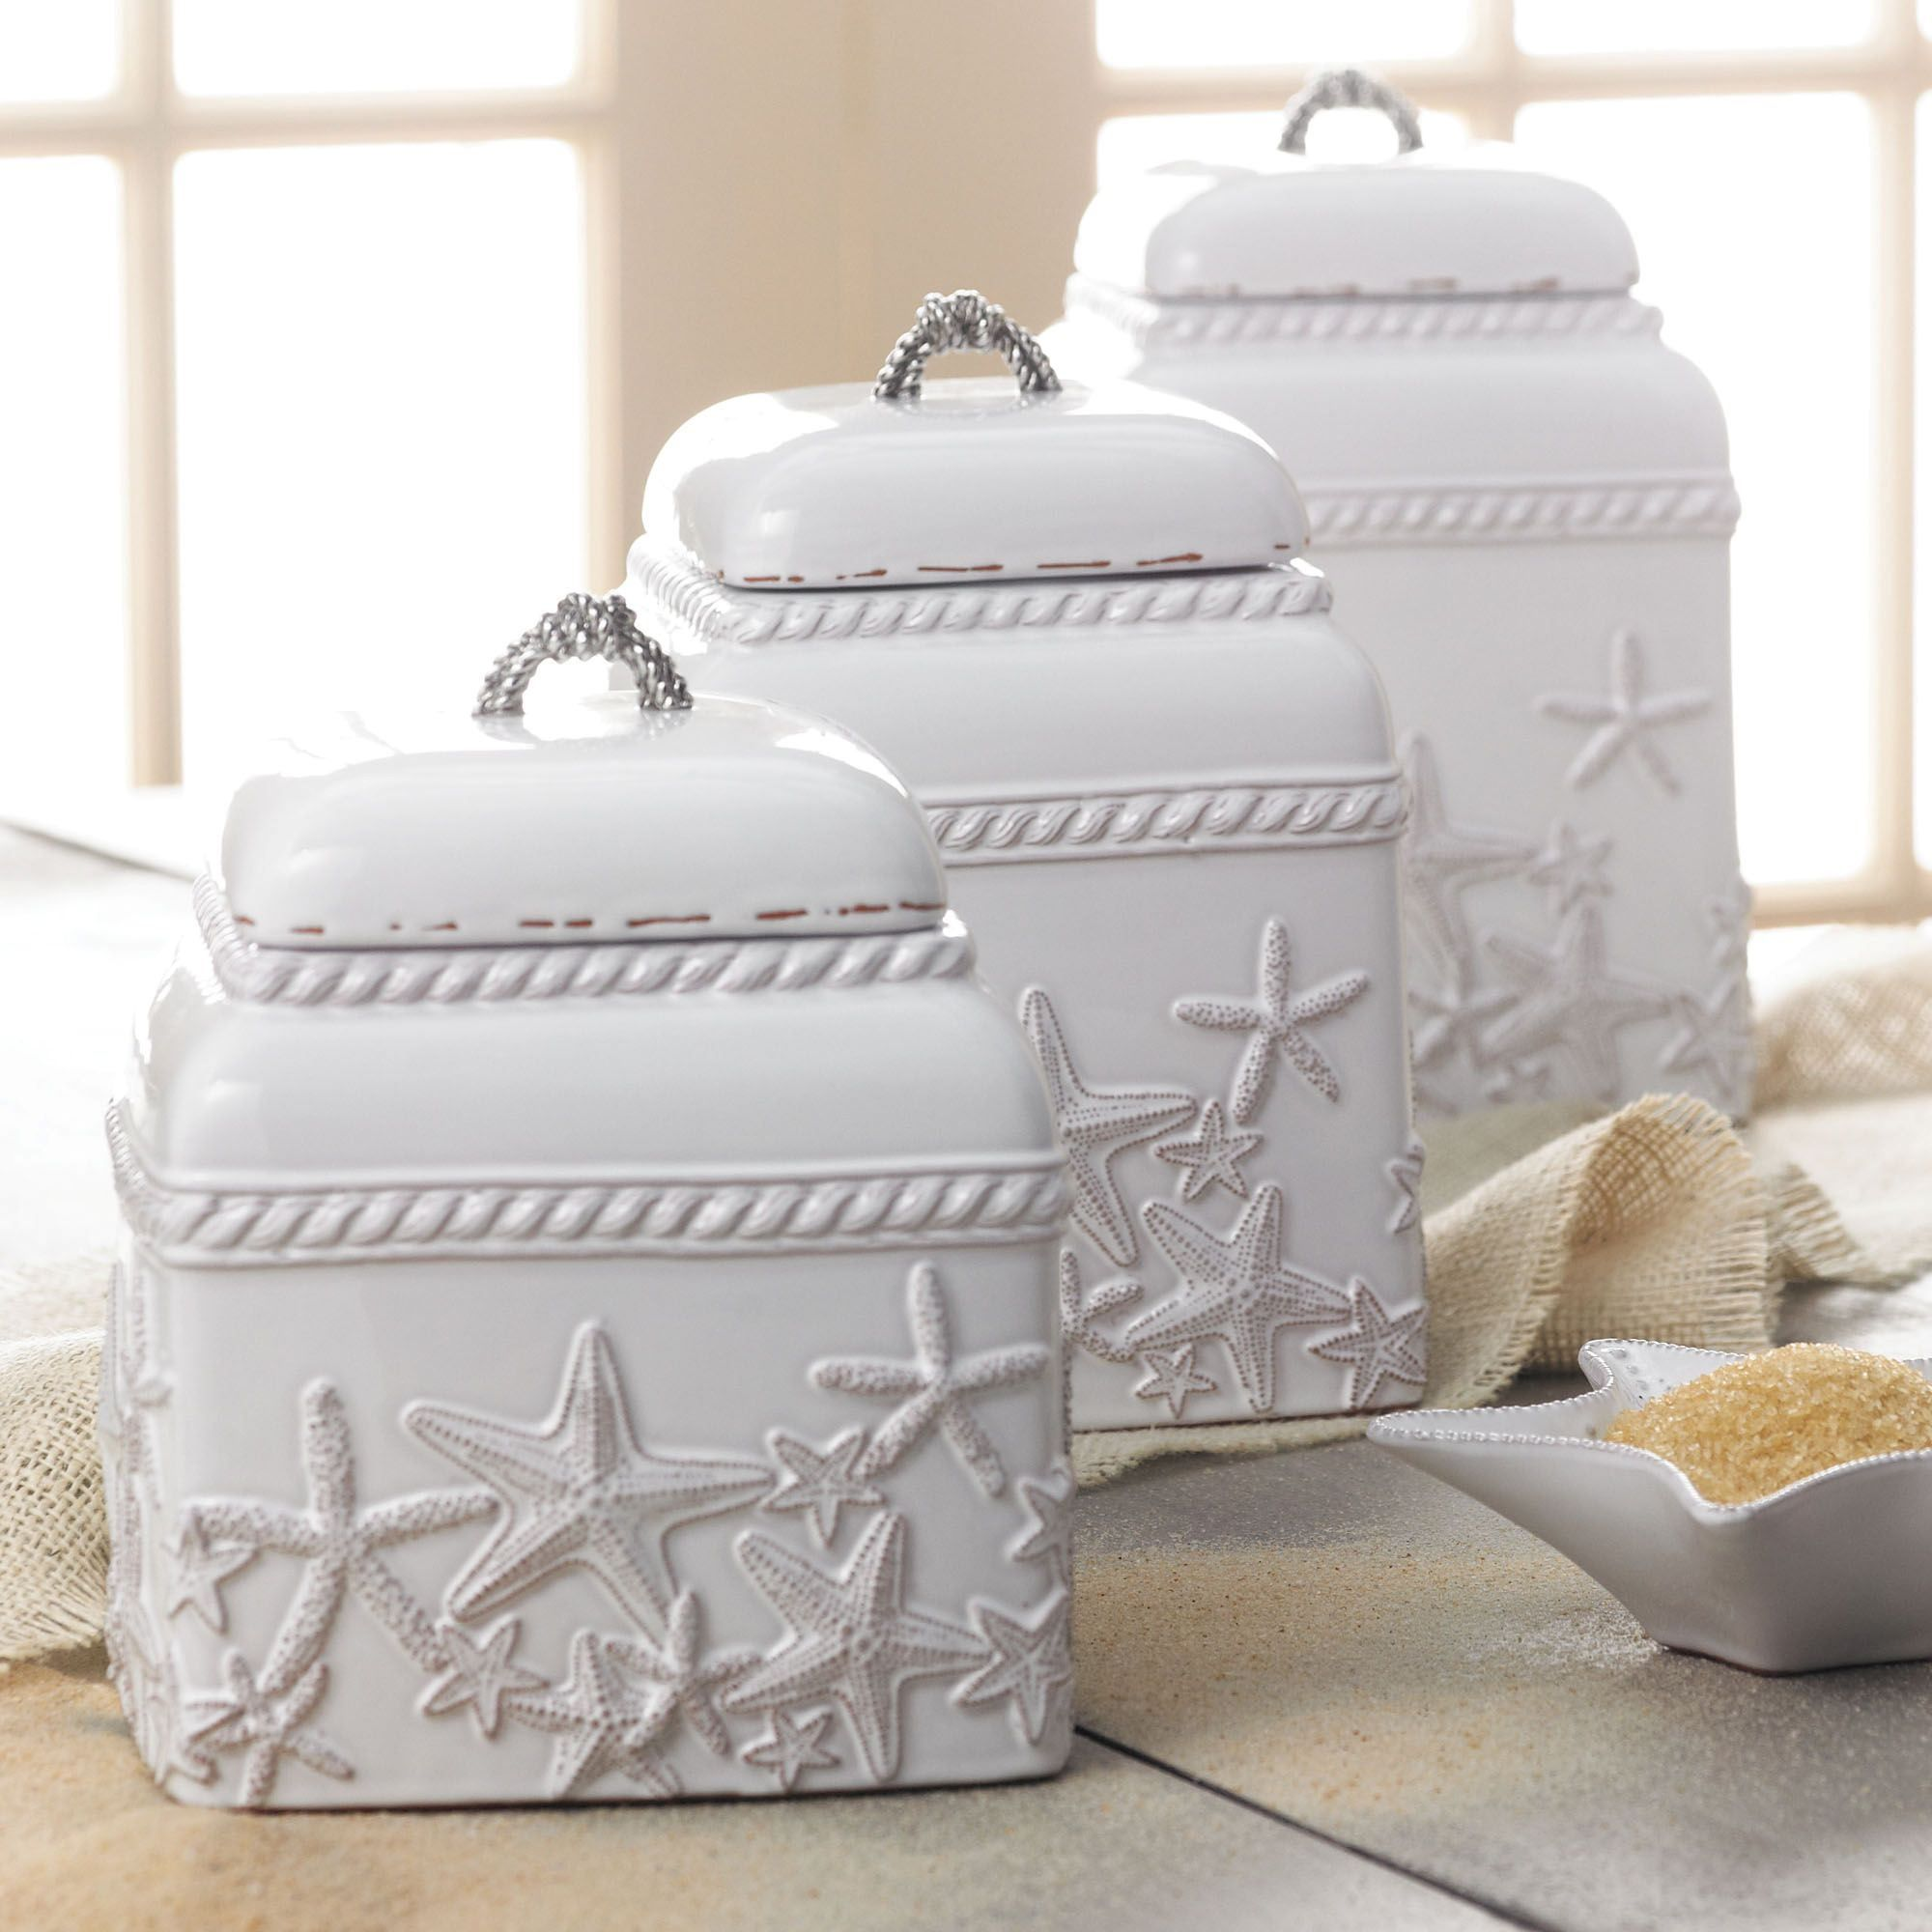 Starfish Ceramic Kitchen Canister Set | Home- kitchen | Pinterest ...